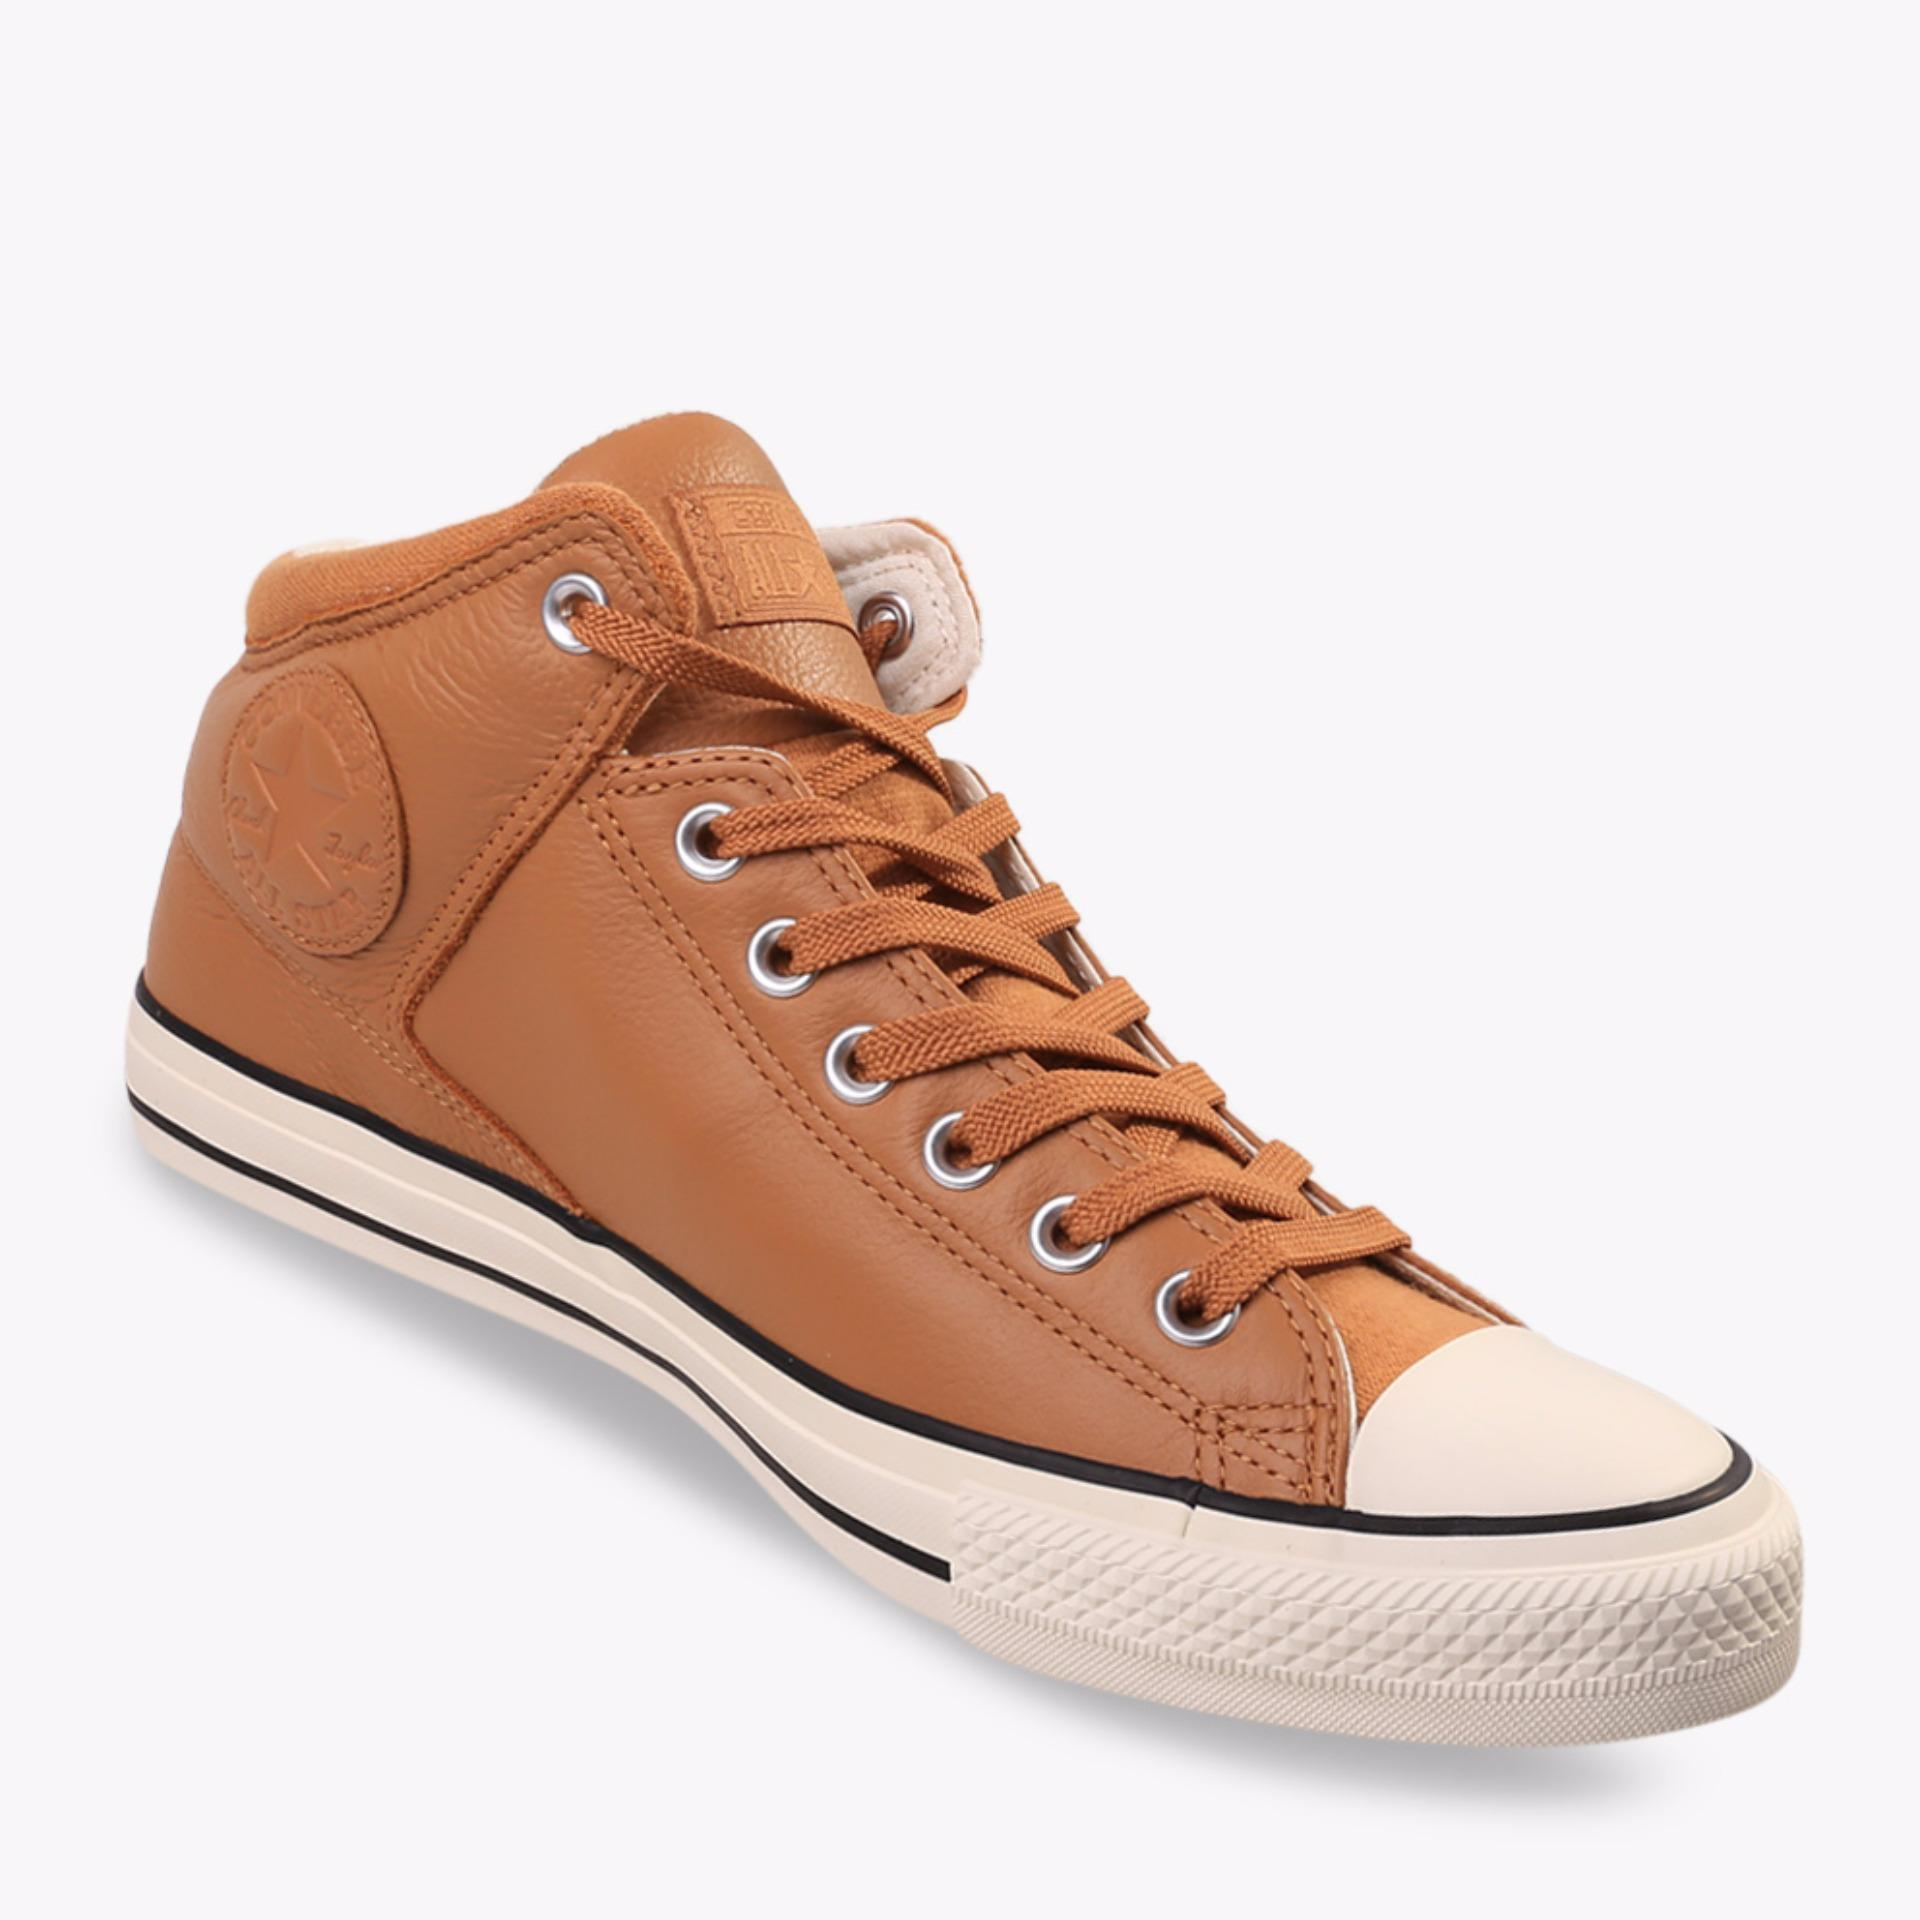 Harga Converse Chuck Taylor All Star High Stret Men S Sneakers Shoes Cokelat Lengkap